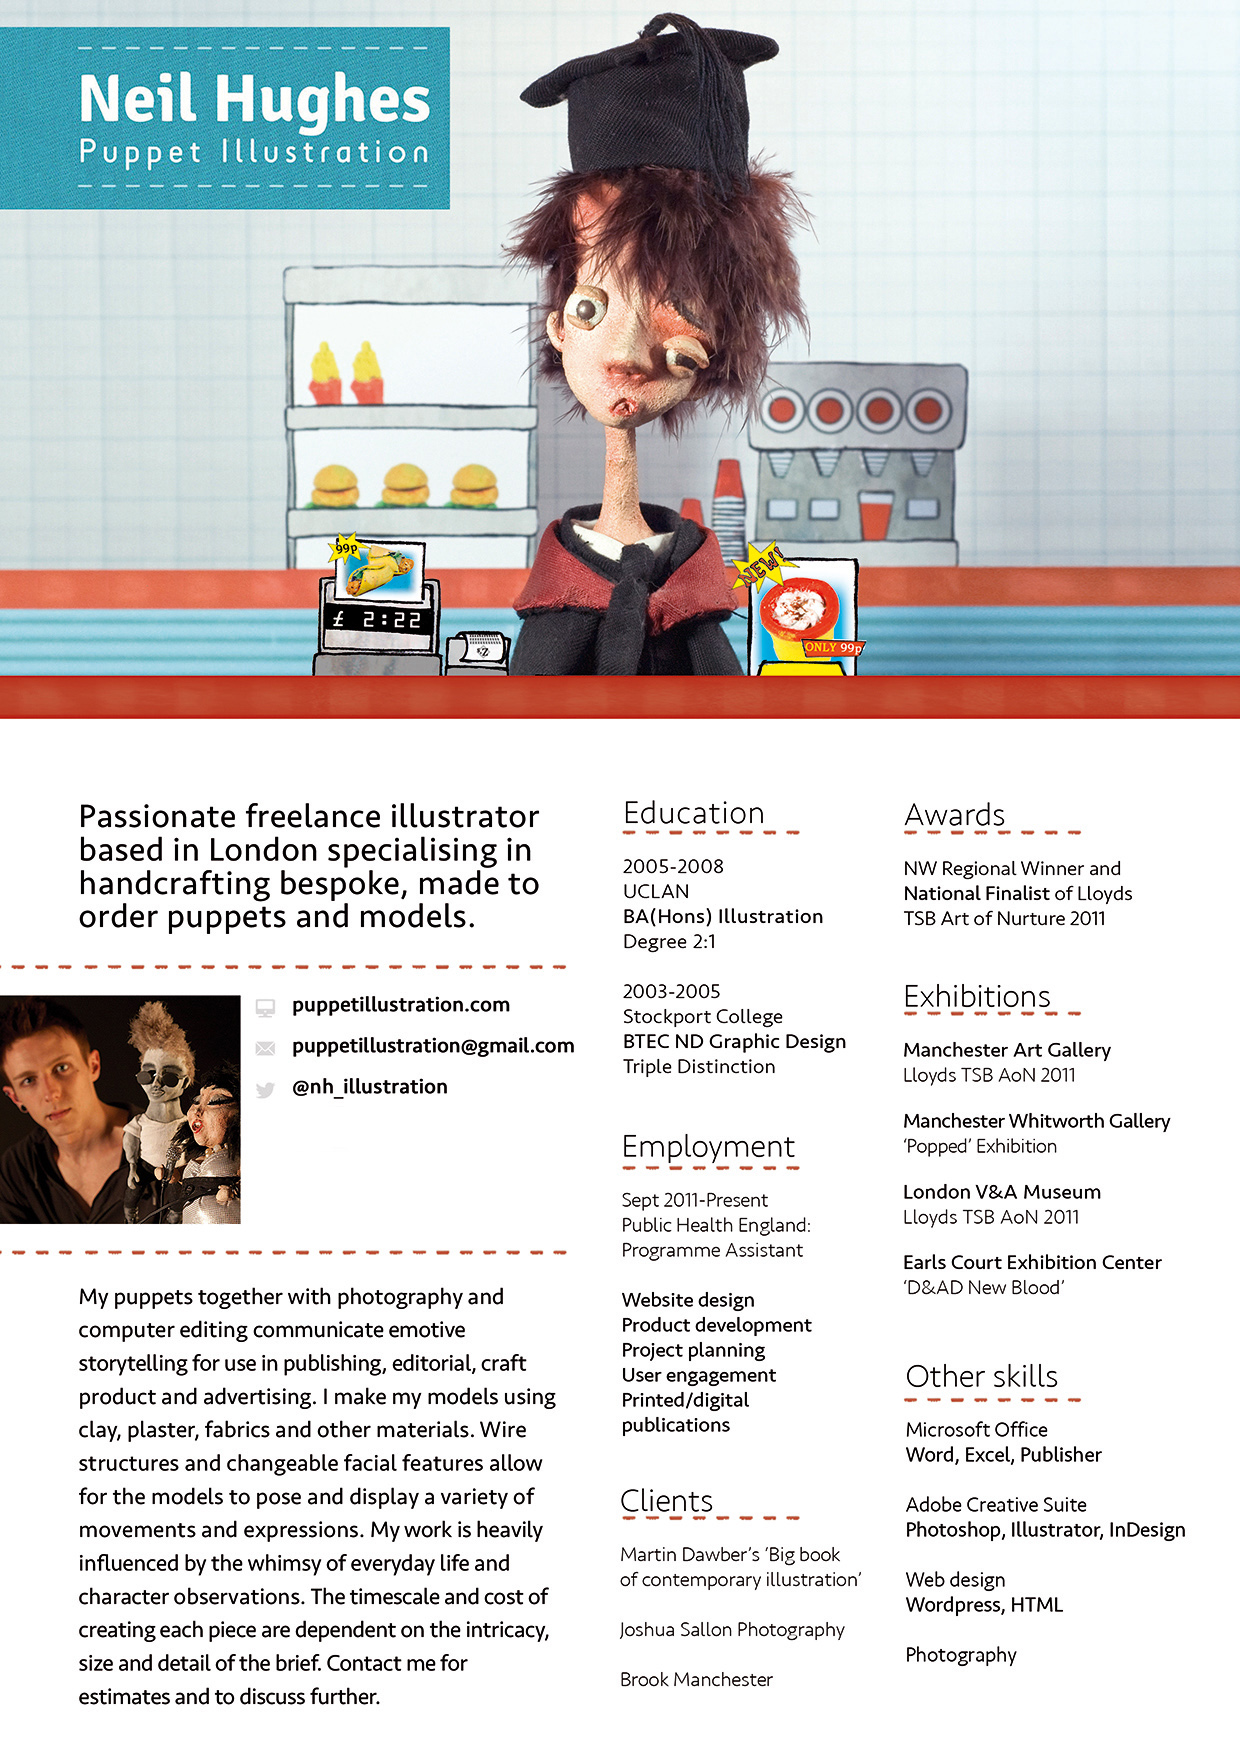 Neil Hughes Puppet Illustration Creative CV - Hidden Info